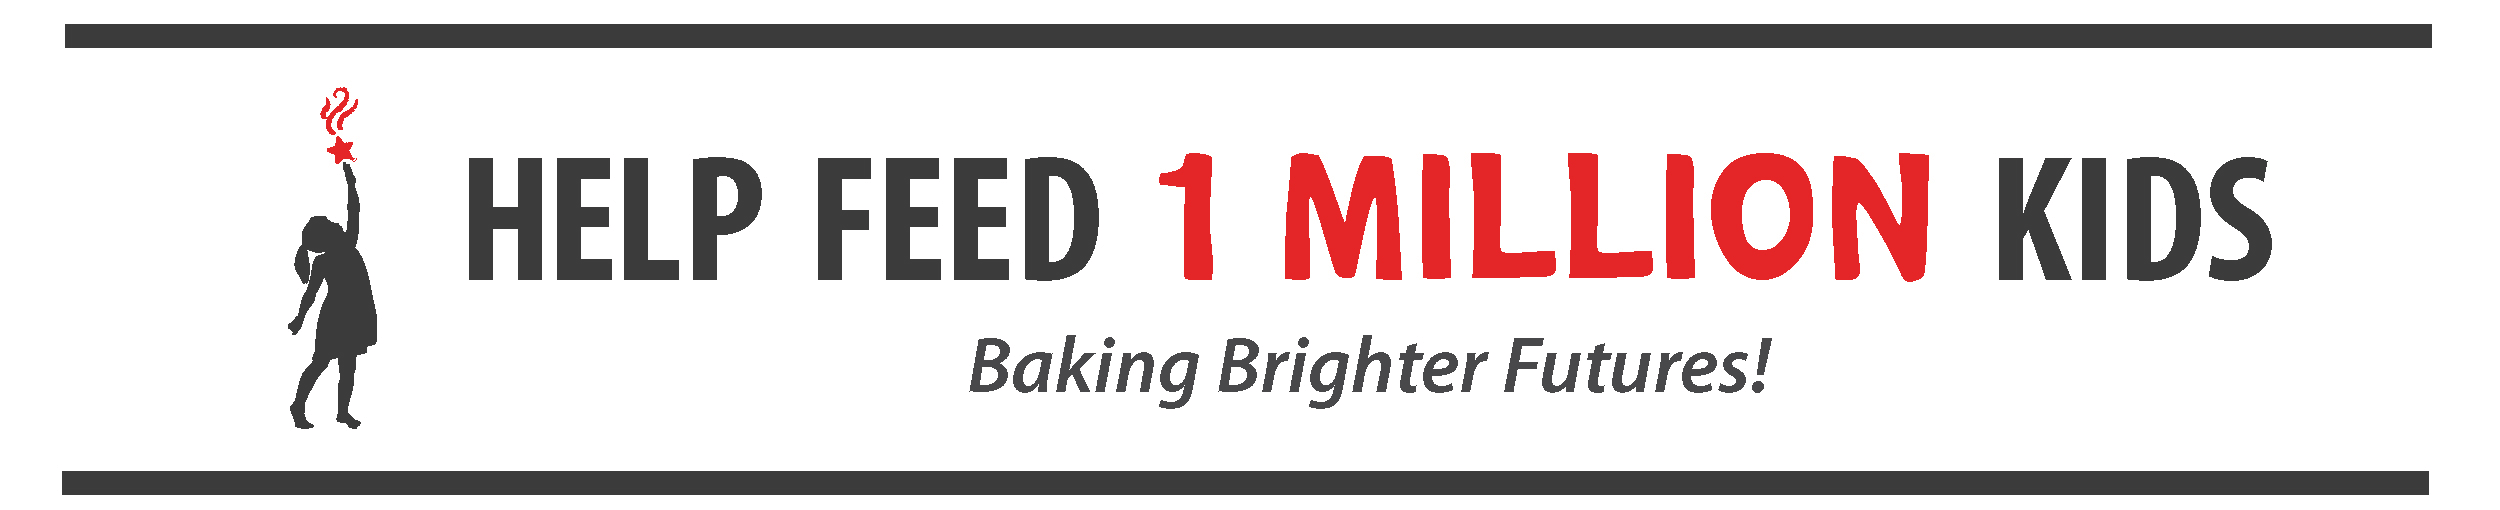 Help Feed 1 Million Kids - Baking Brighter Futures